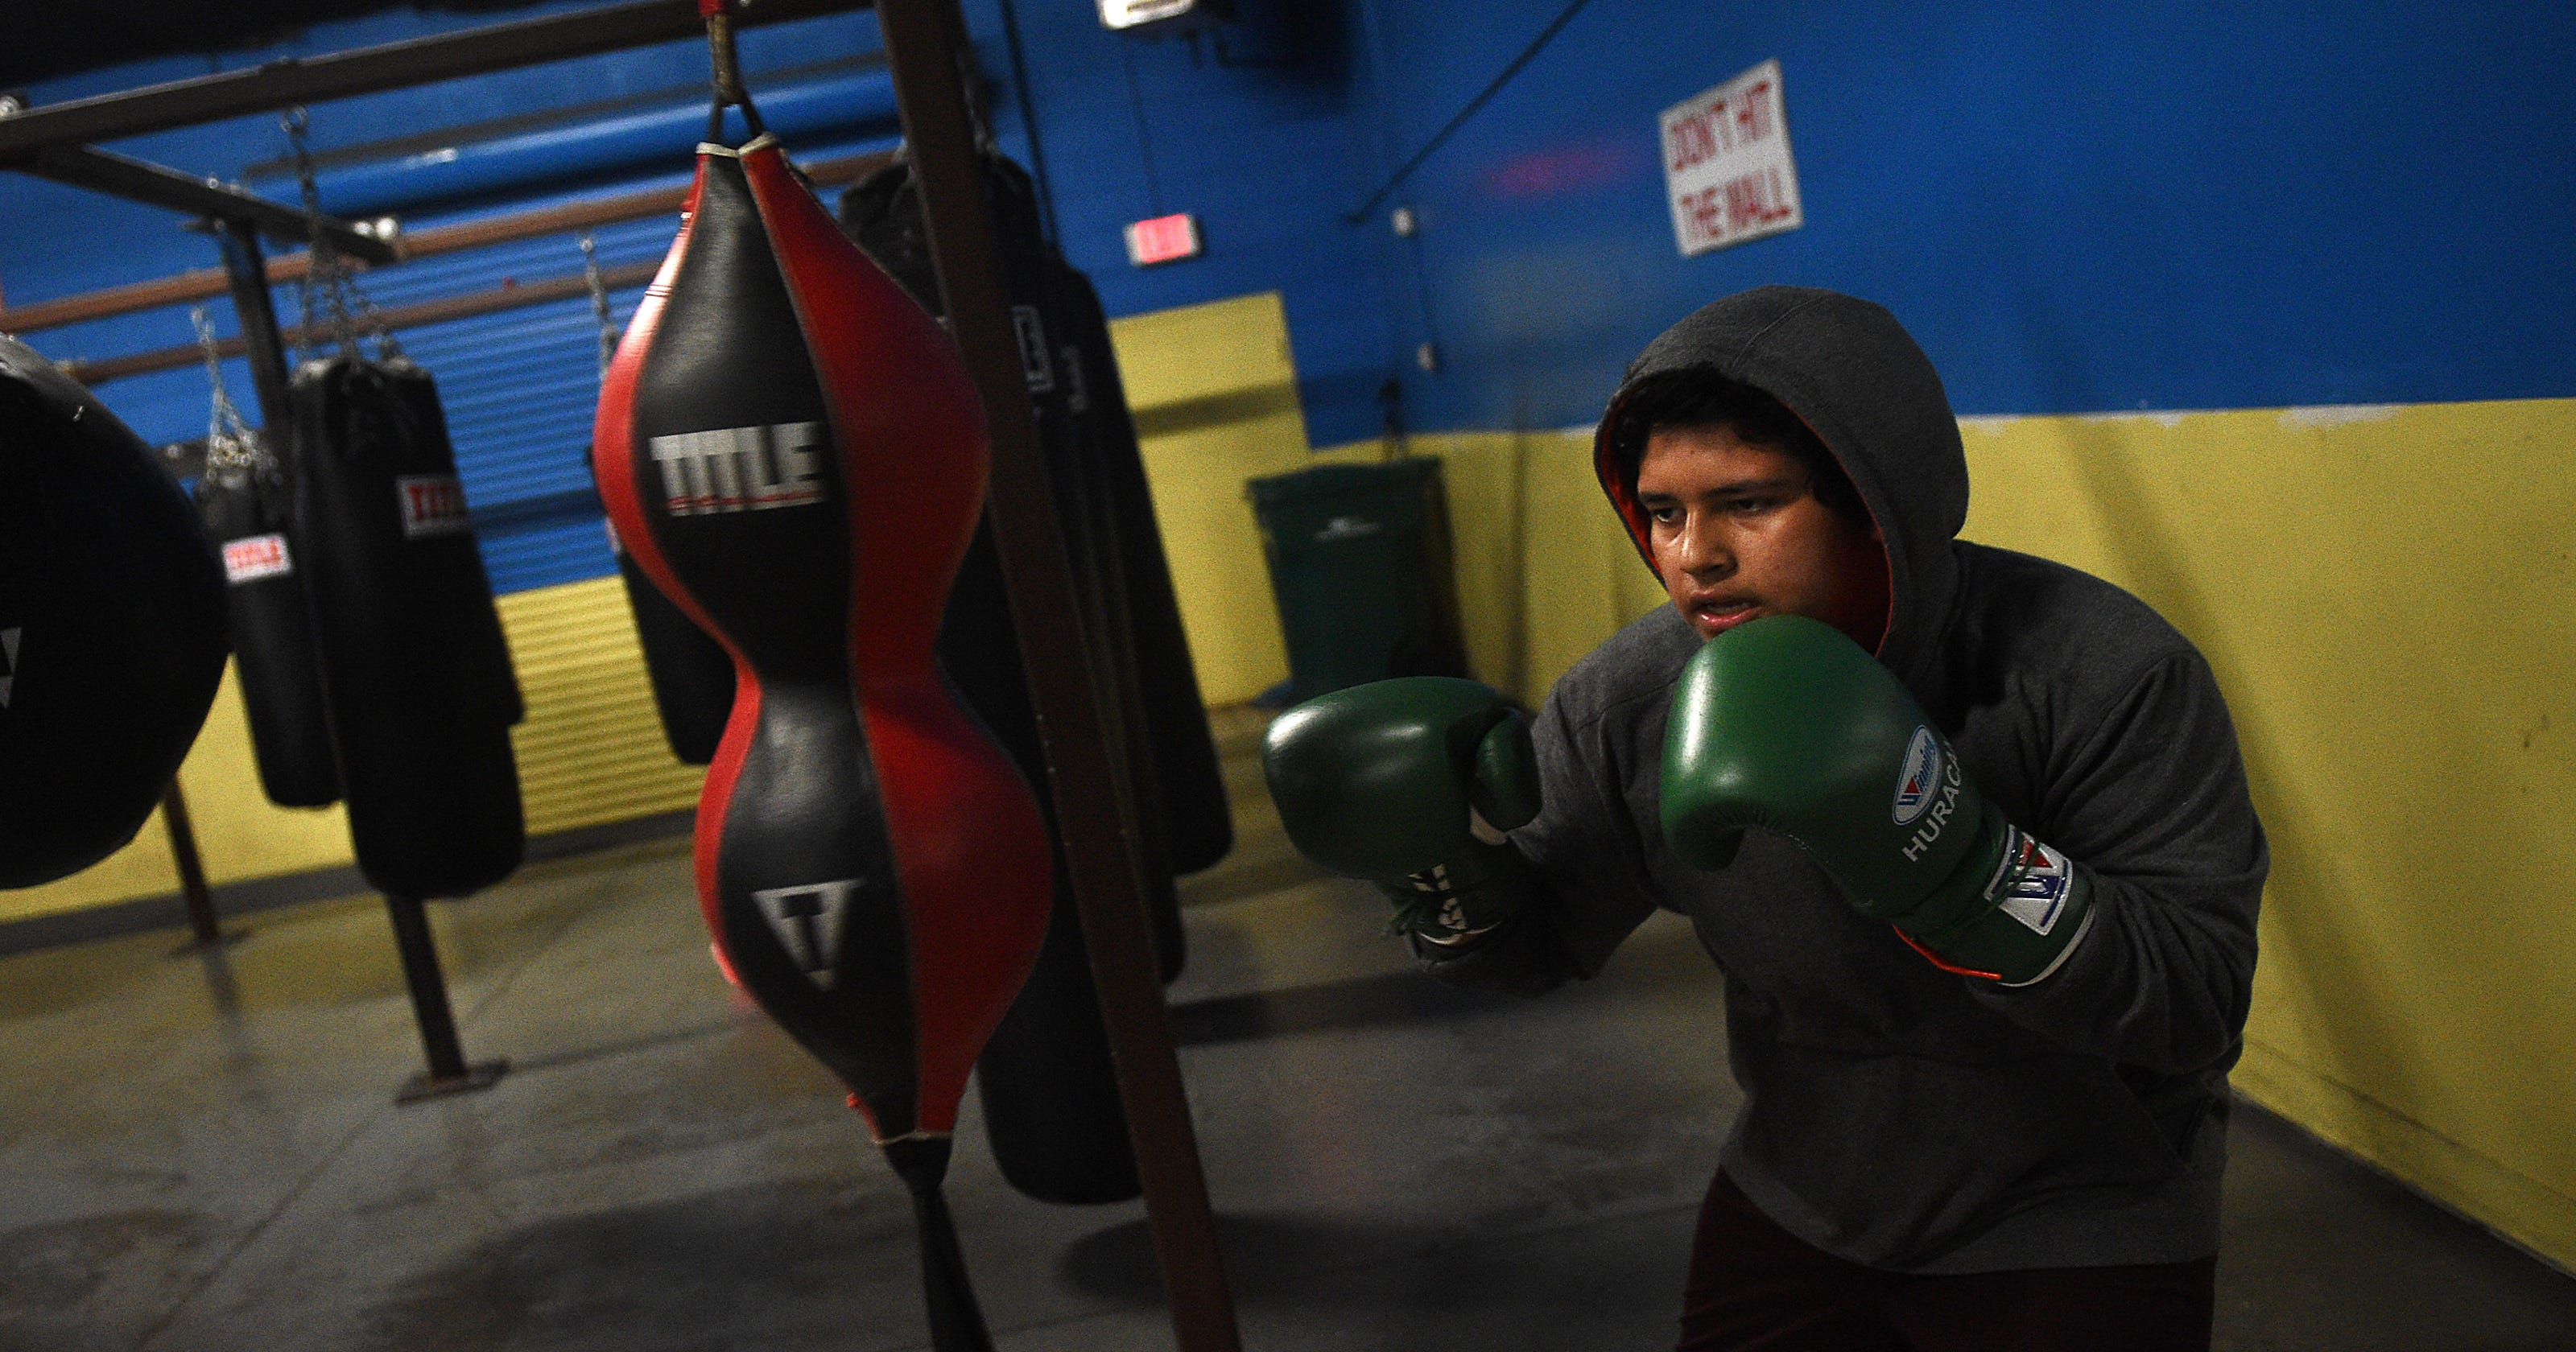 Battle Born Boxing Club Keeps Kids On Right Track